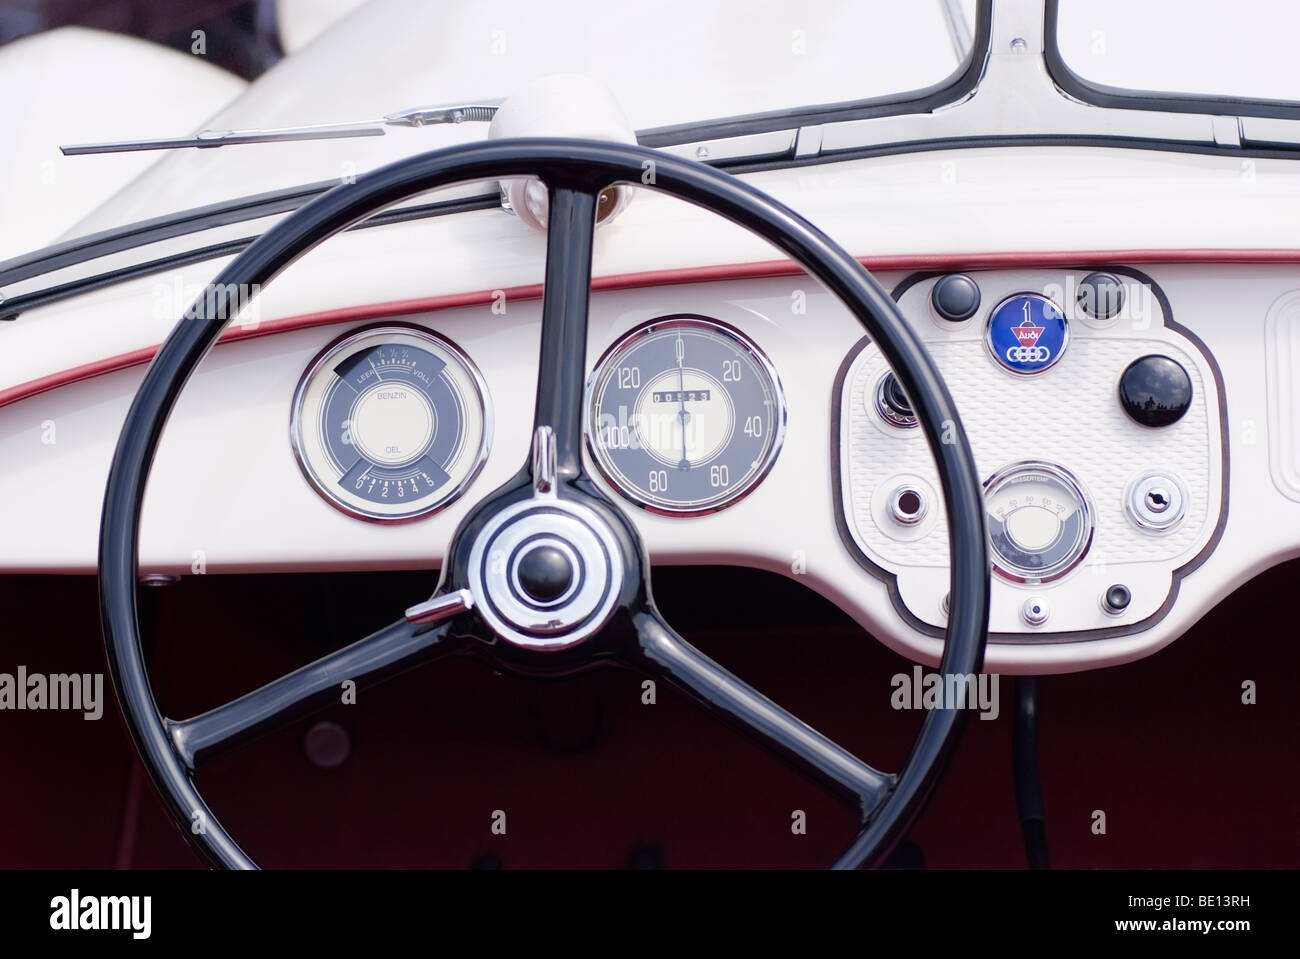 Dashboard of a 1935 Audi 'Front Roadster' That won the Q Class during the 2009 Pebble Beach Concours d'Elegance - Stock Image